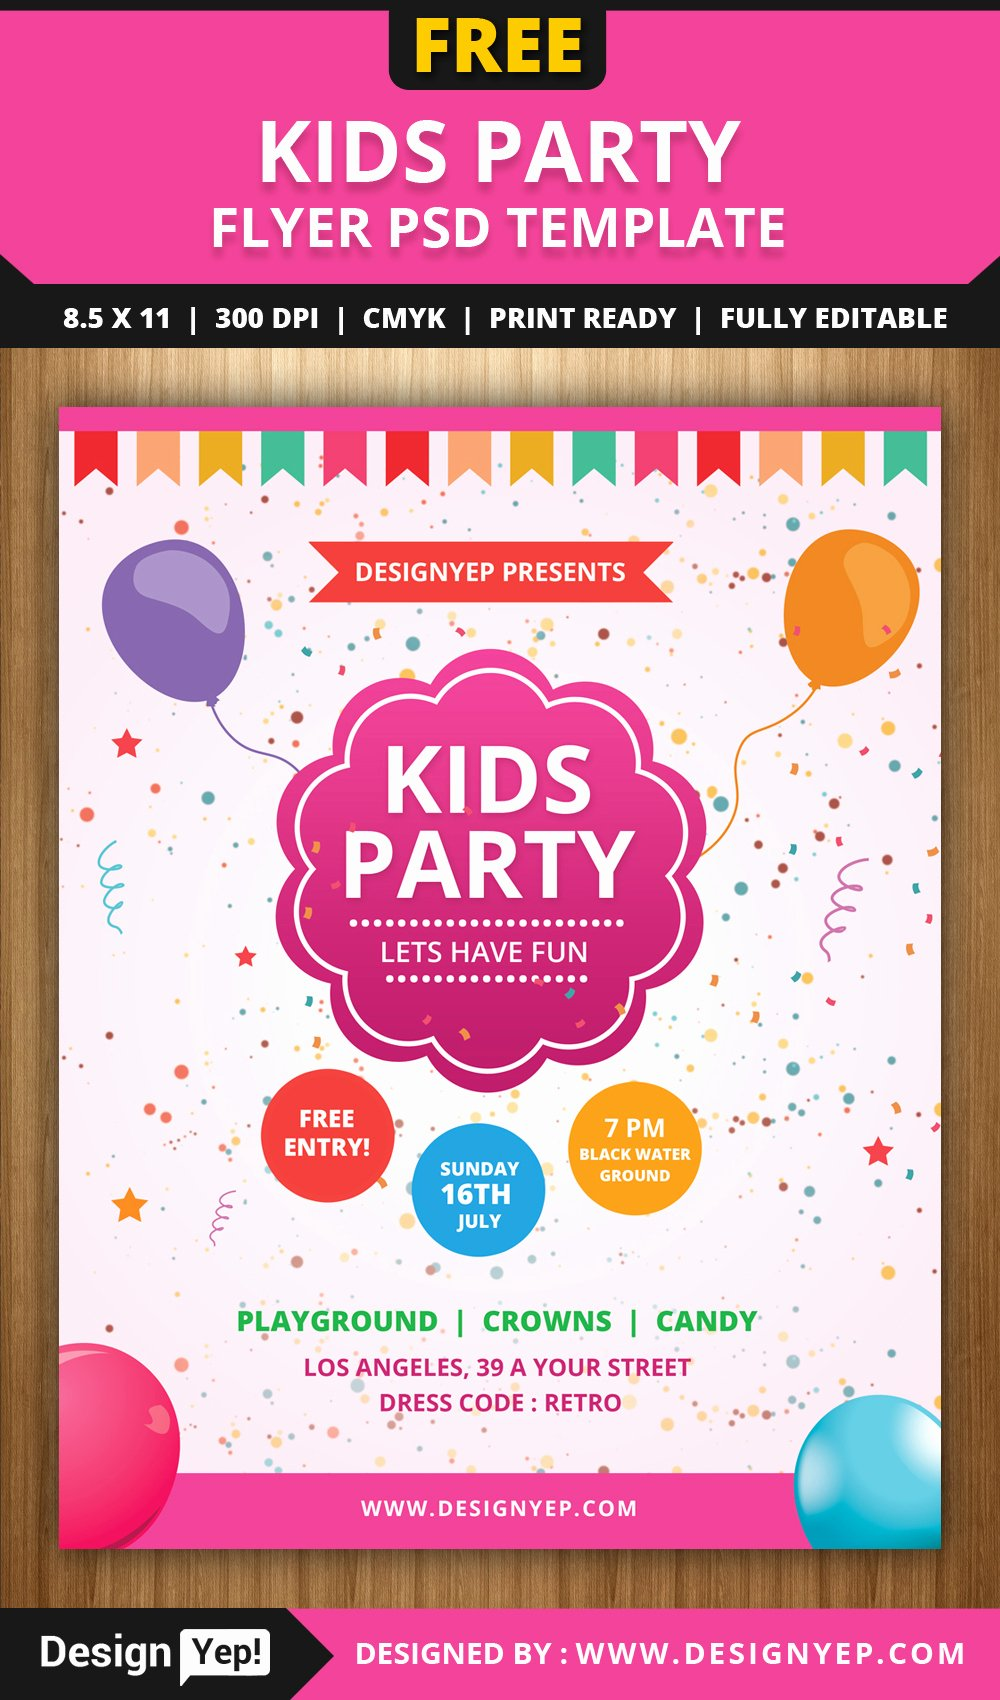 Free Kids Party Flyer Psd Template Designyep